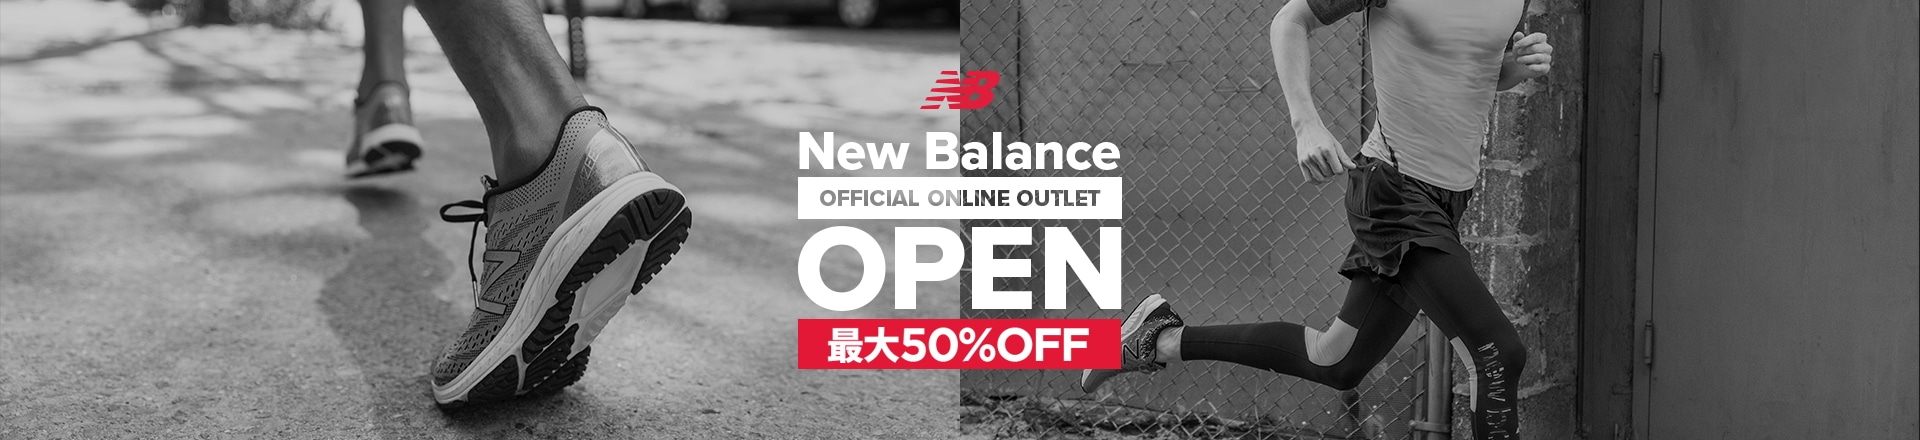 OFFICIAL ONLINE OUTLET